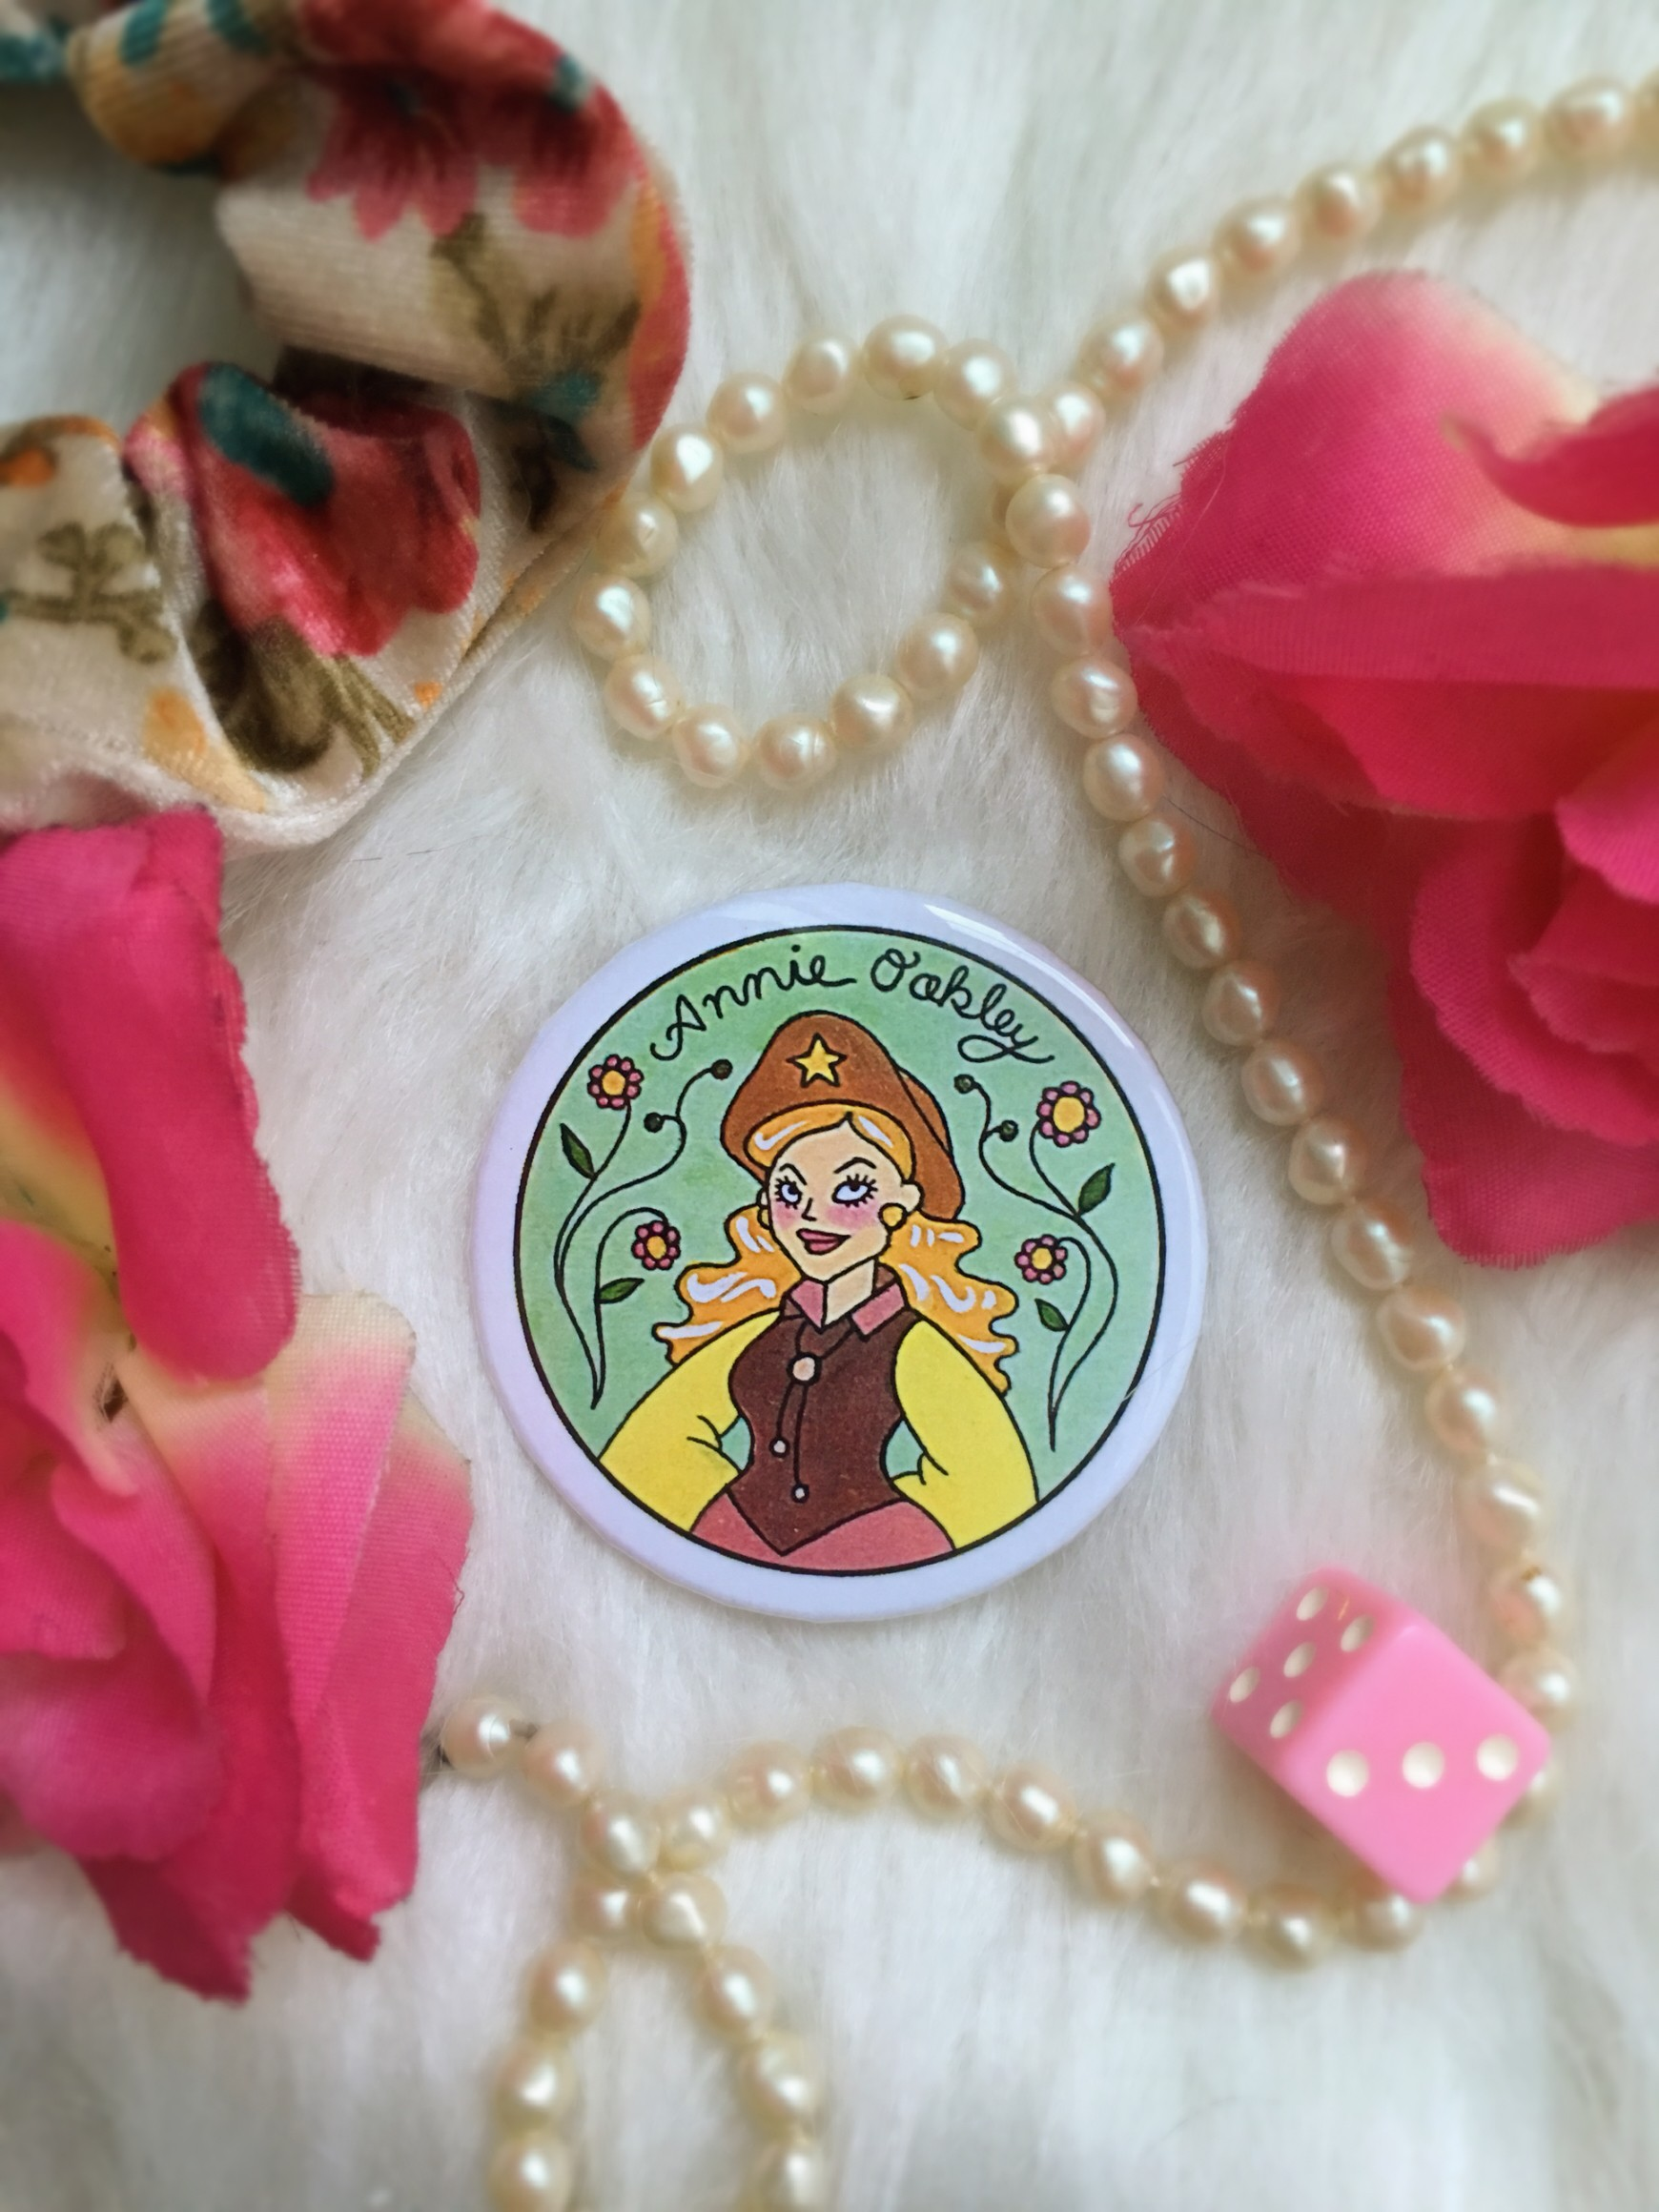 Historical Women Pin Collection: Annie Oakley